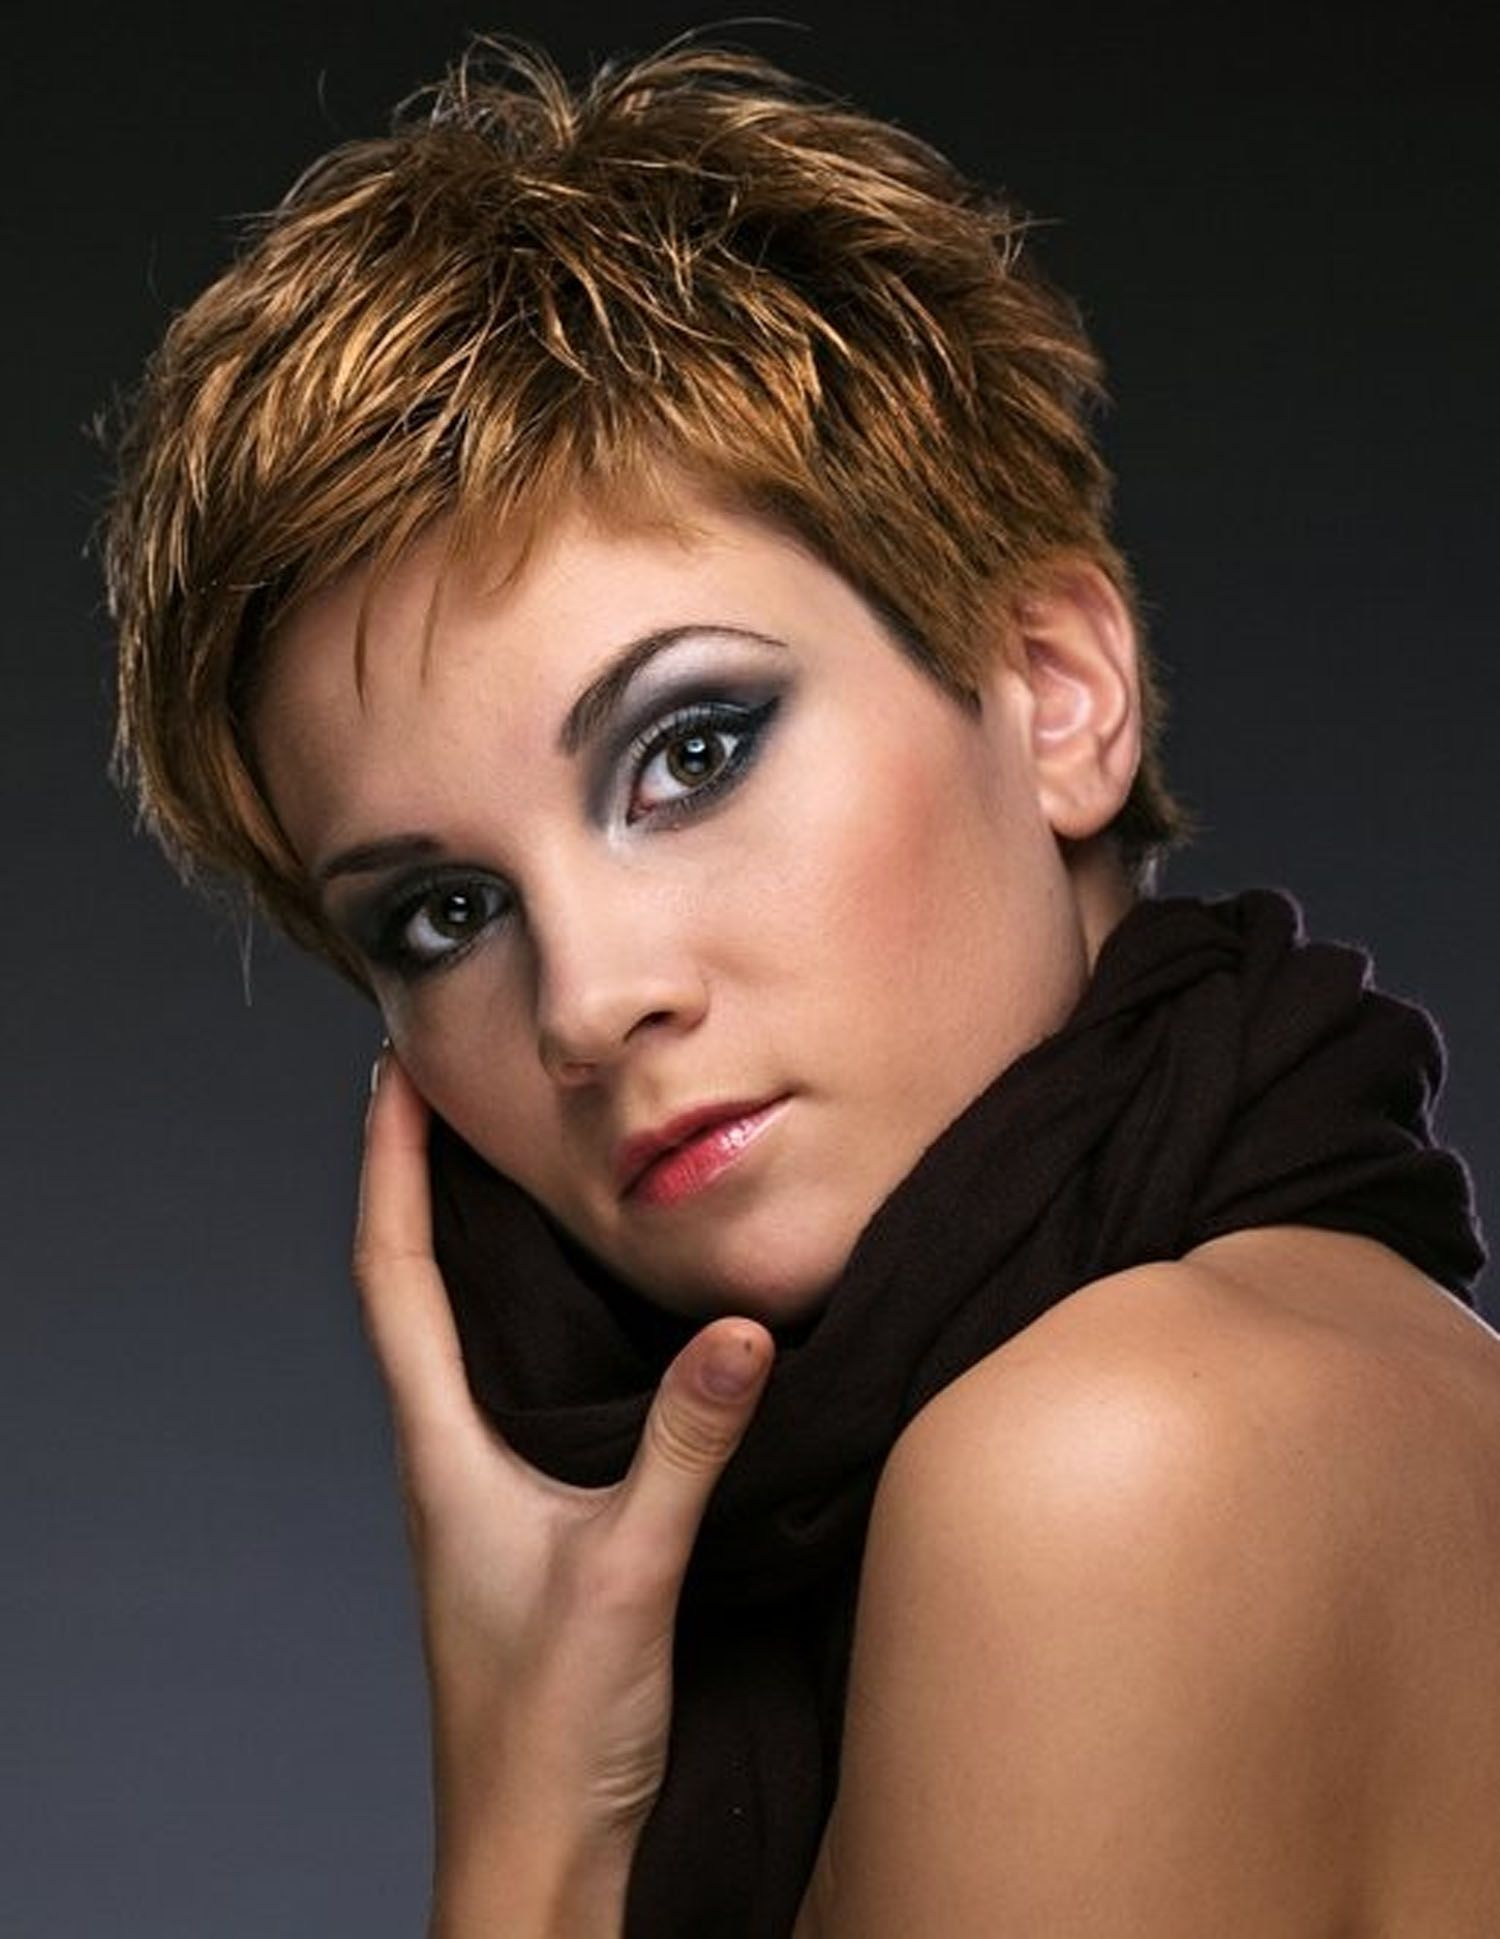 Cute Hair Color of Very Short Hairstyle as Hair Trends Trendy